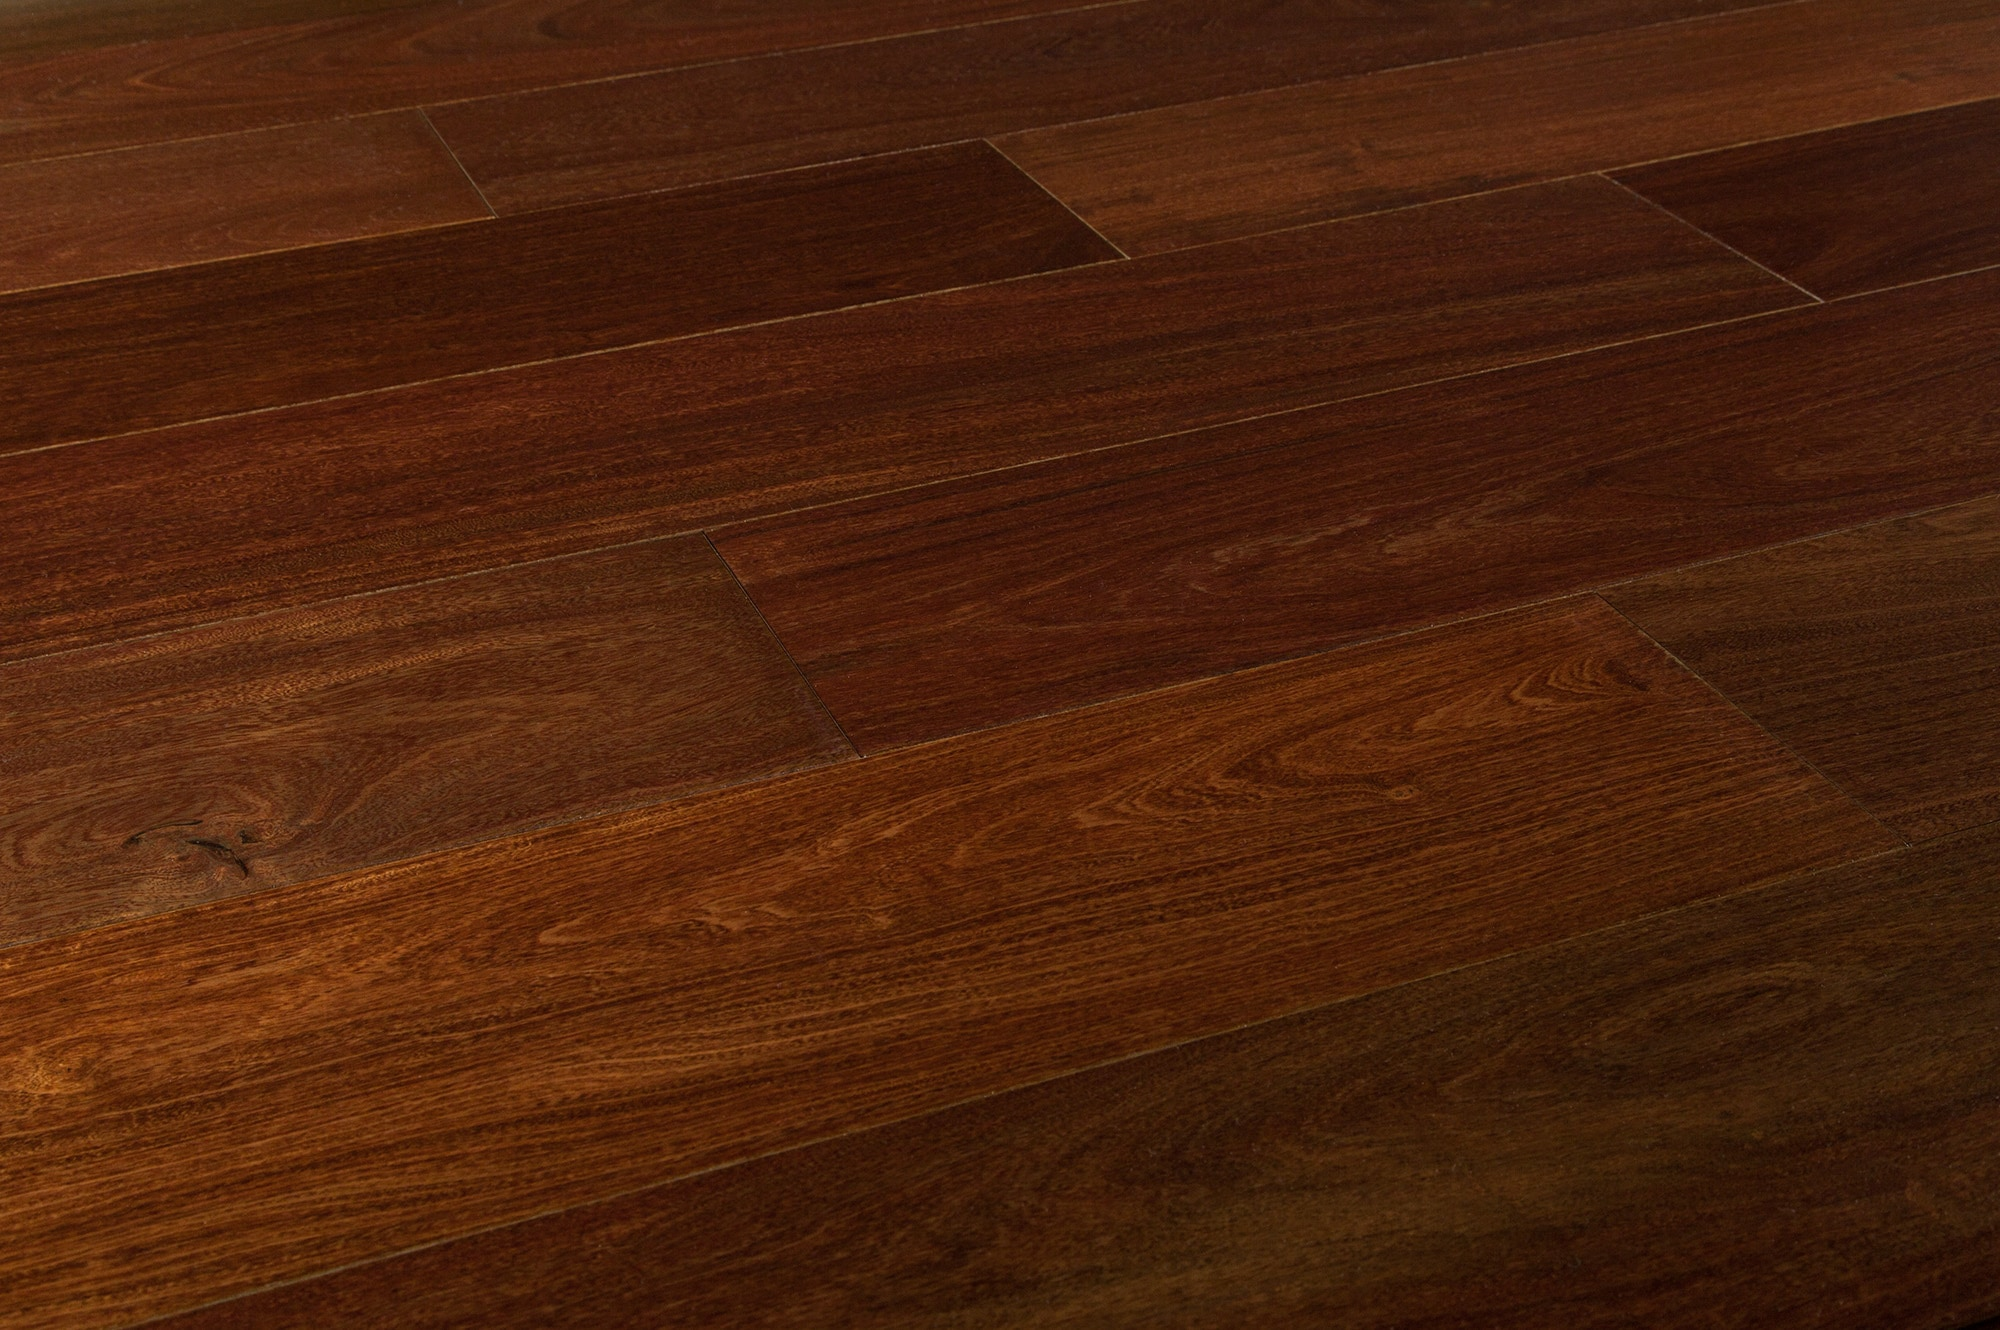 Brazilian walnut wood flooring images for Walnut flooring